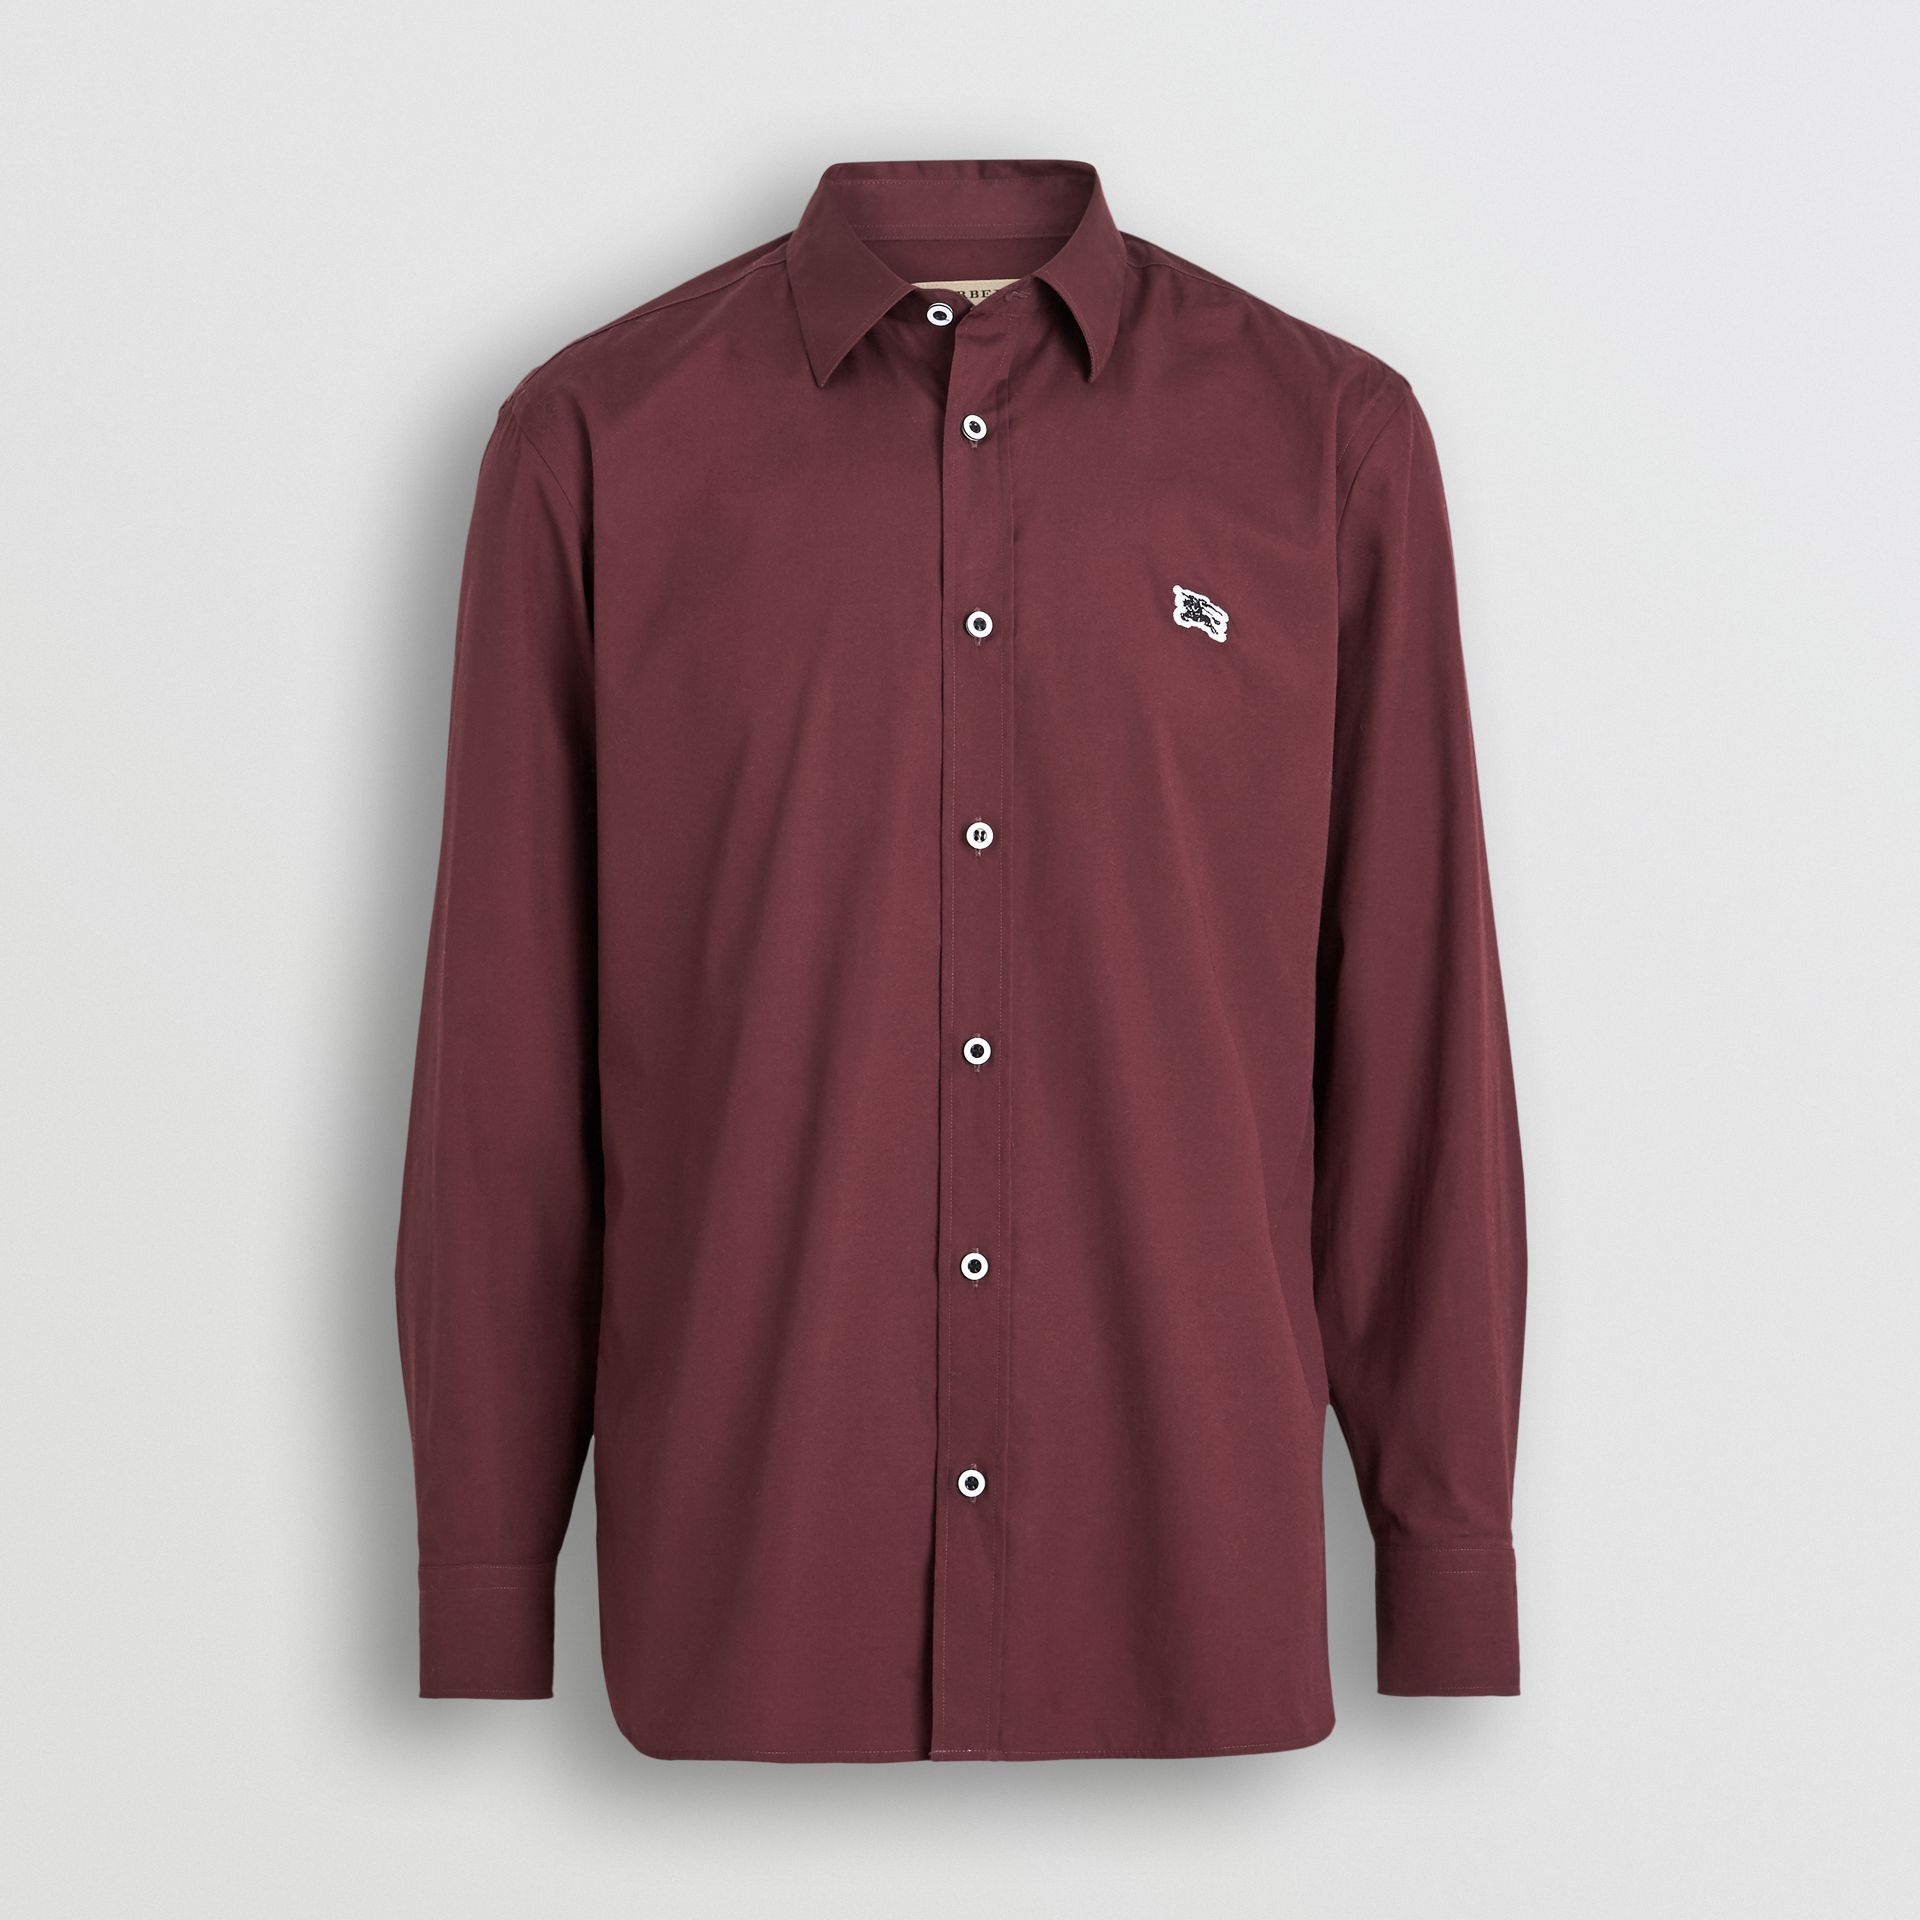 Contrast Button Stretch Cotton Shirt in Oxblood - Men | Burberry - gallery image 3